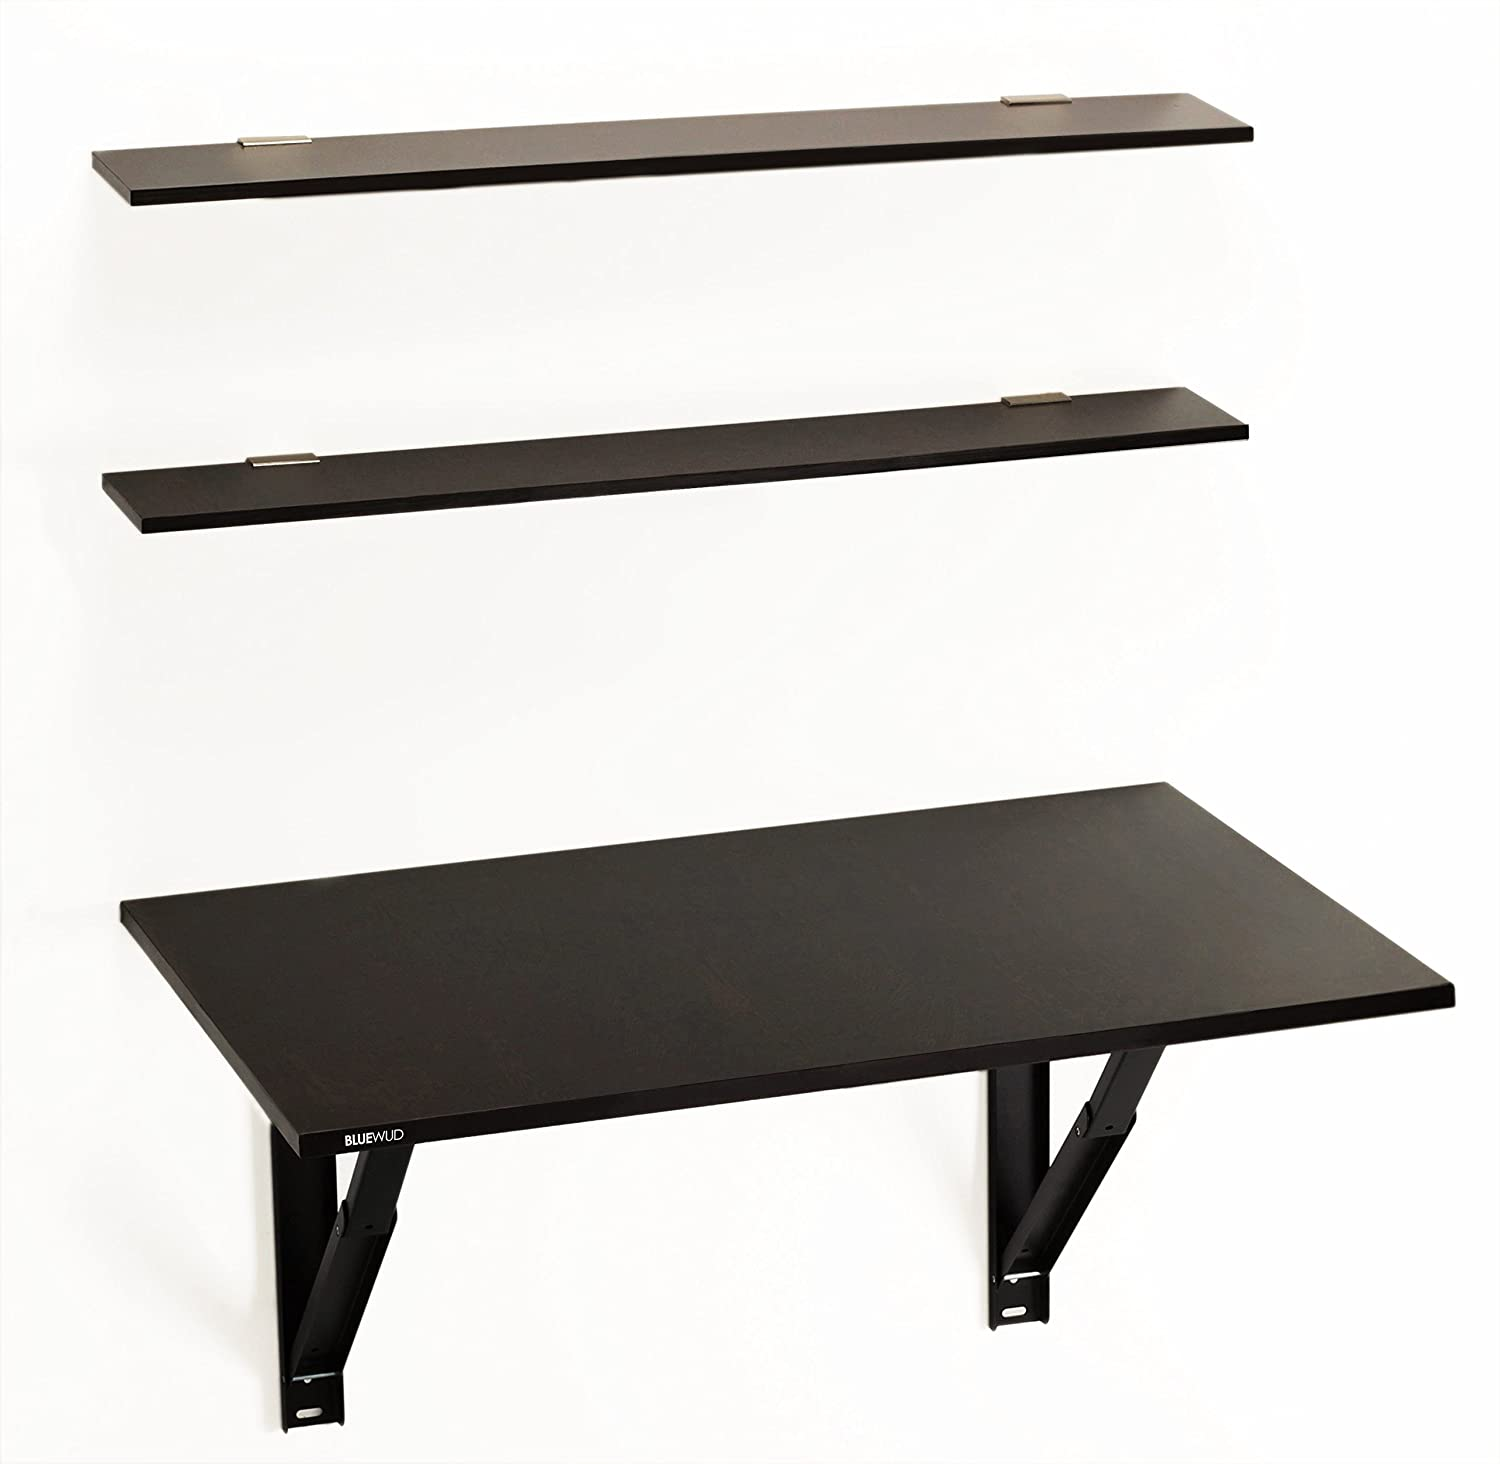 foldable office table. Bluewud Hemming Folding Wall Mounted Study/Computer/Laptop/Office Table With Book Shelves (Wenge): Amazon.in: Home \u0026 Kitchen Foldable Office